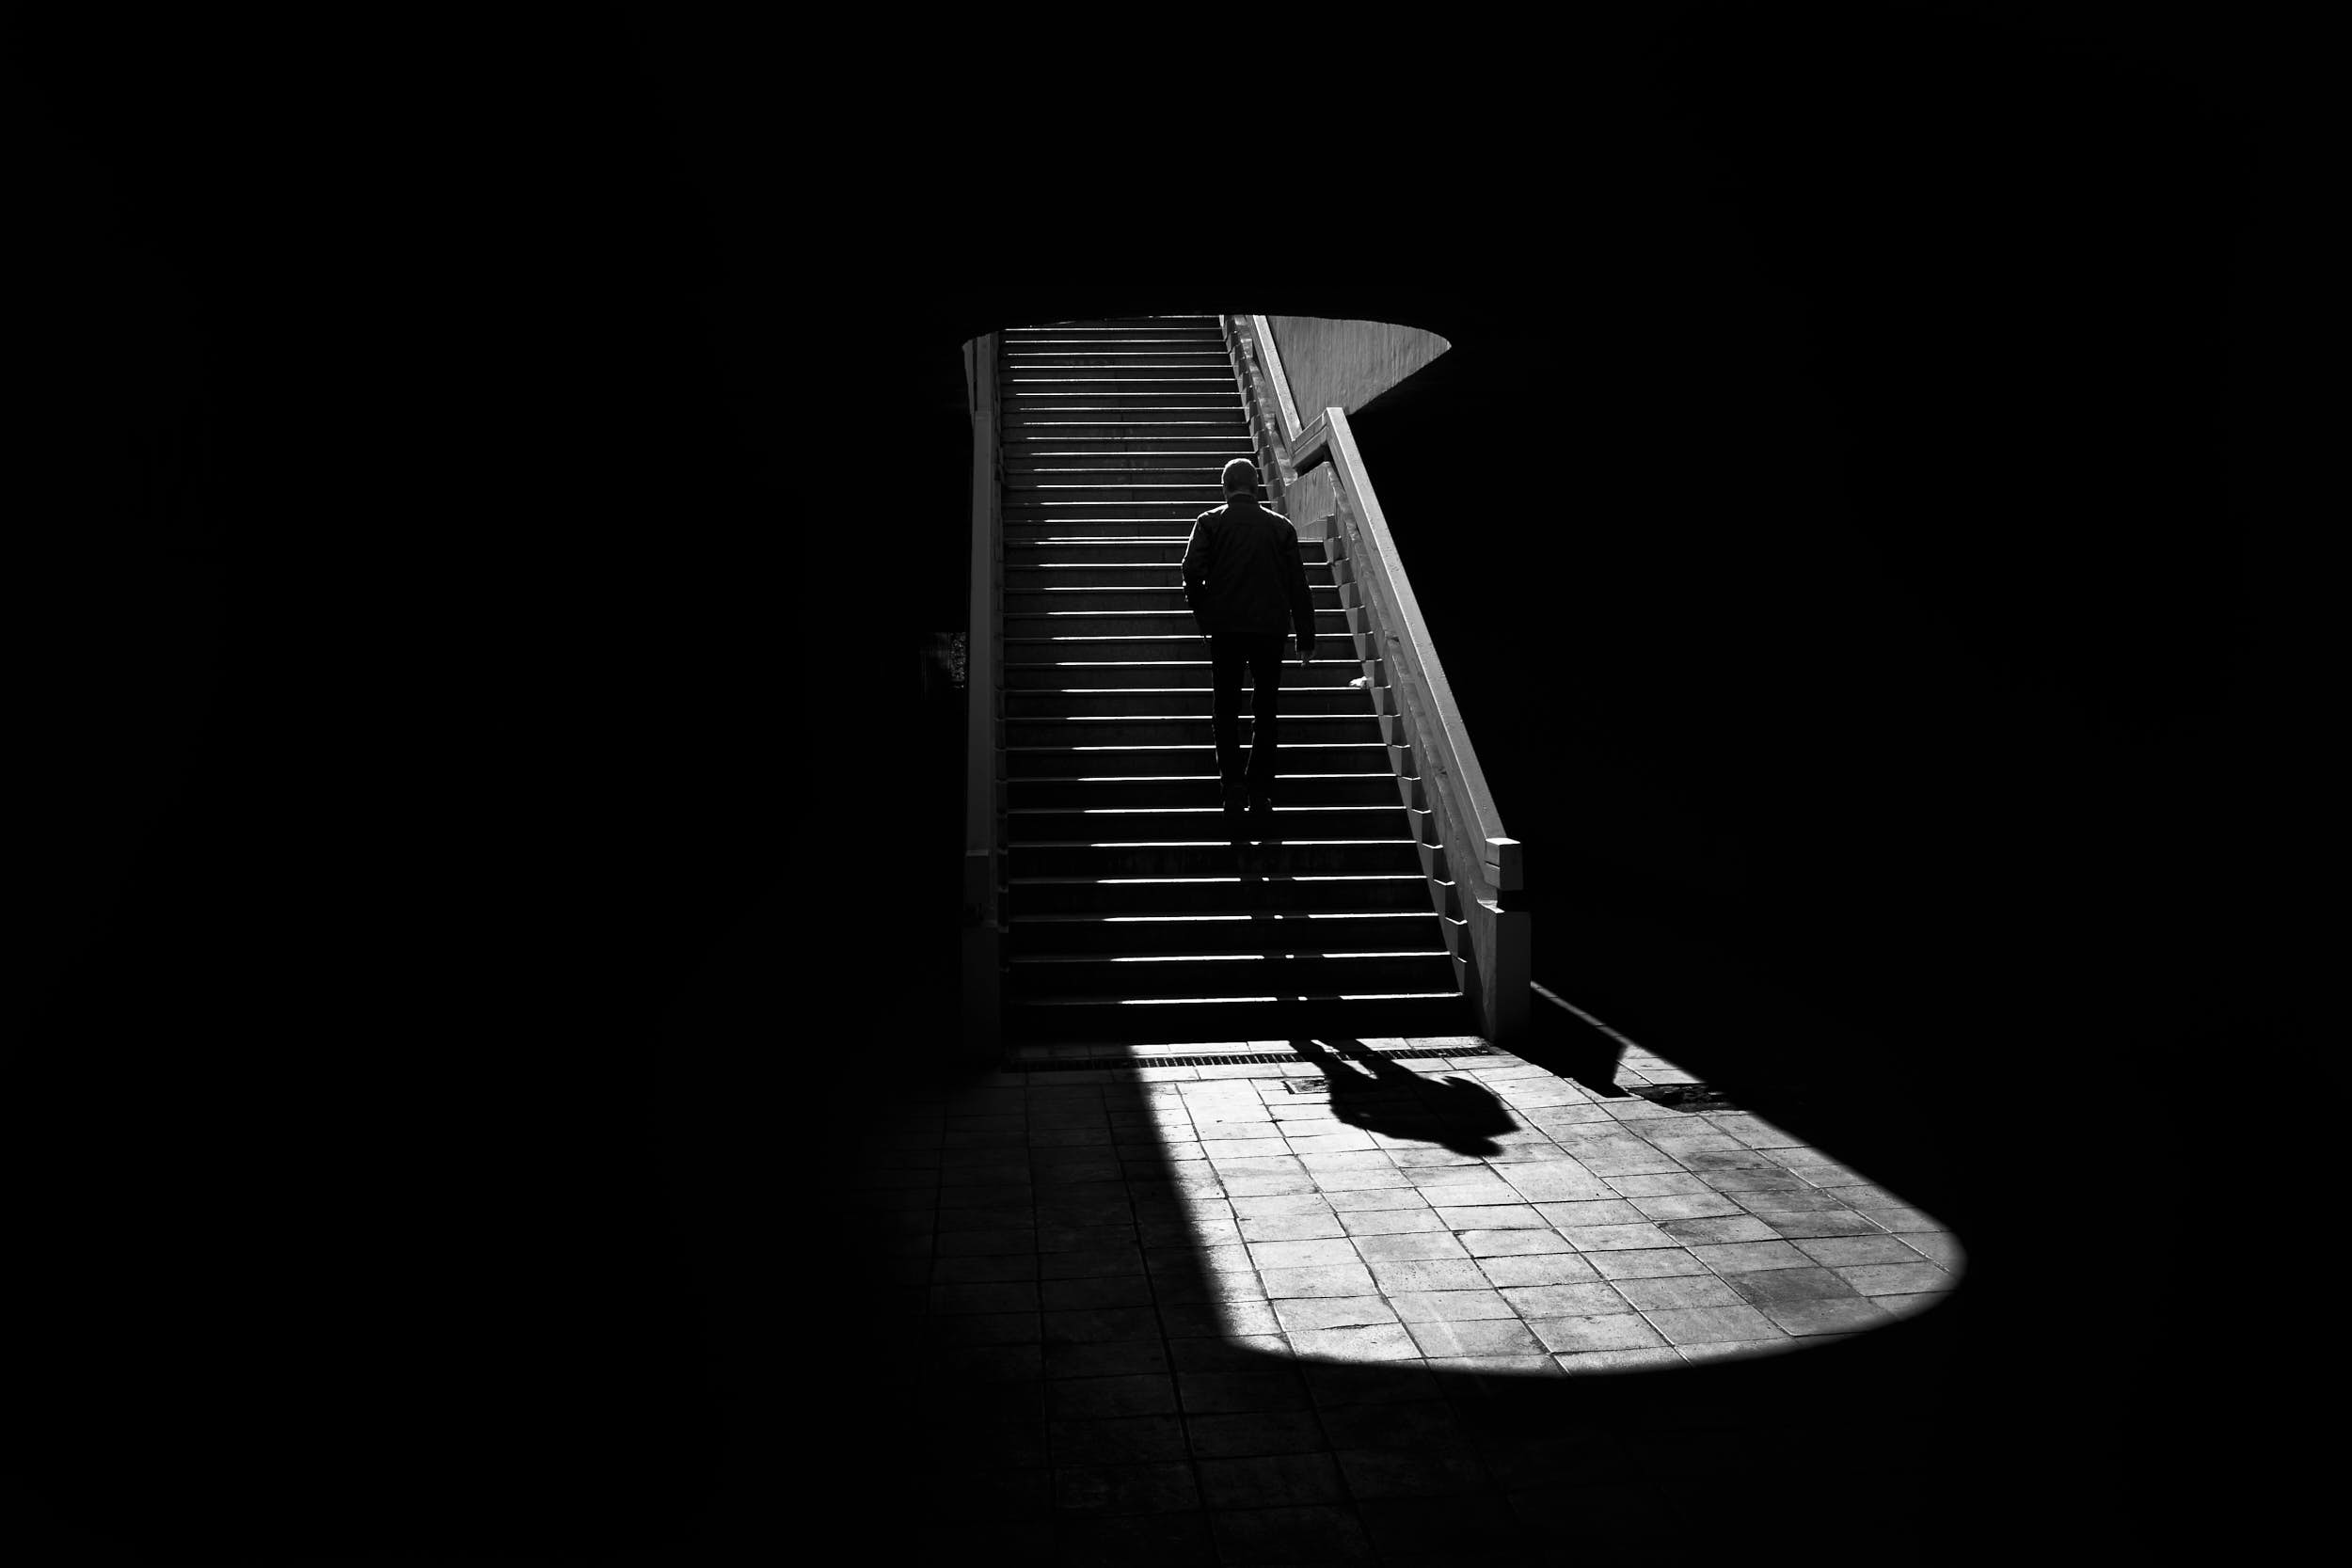 Black and white street photography: man walking up a staircase in an urban scene with deep shadows and strong contrast.